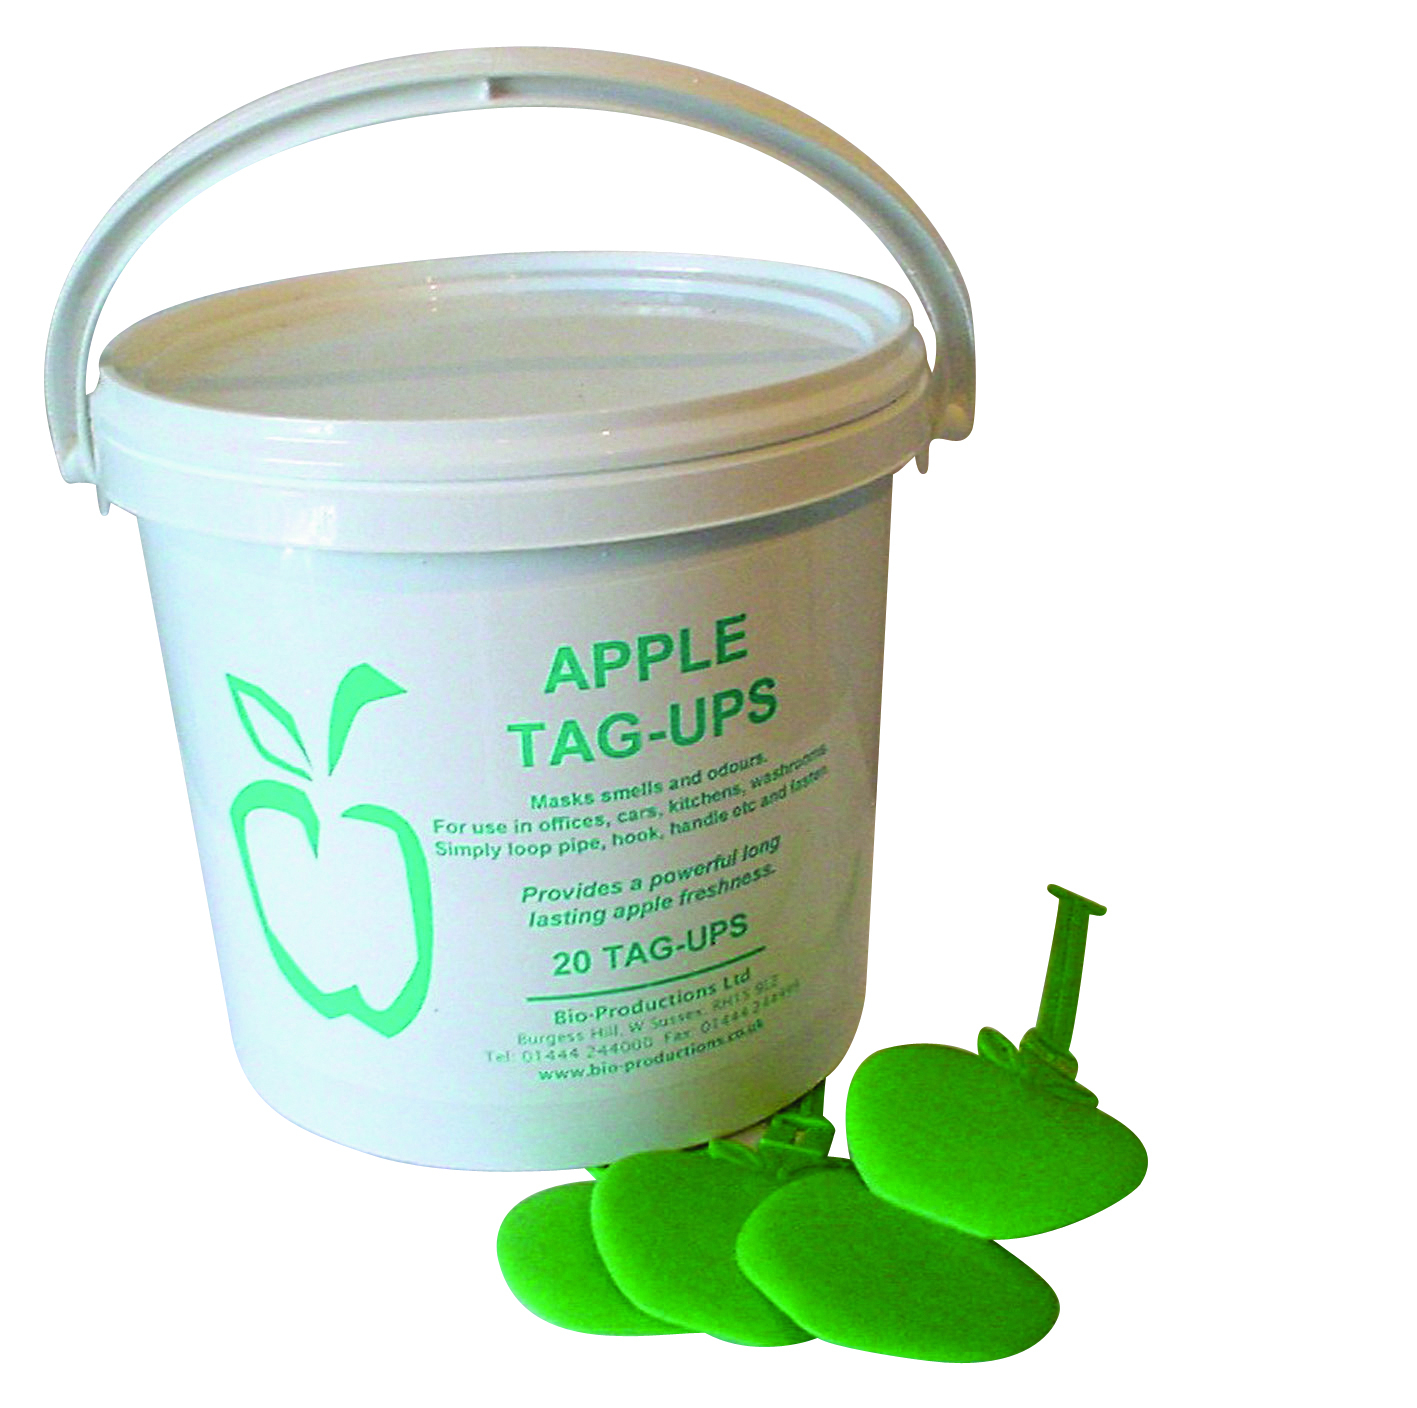 Apple Tag Up Air Freshner 20pk